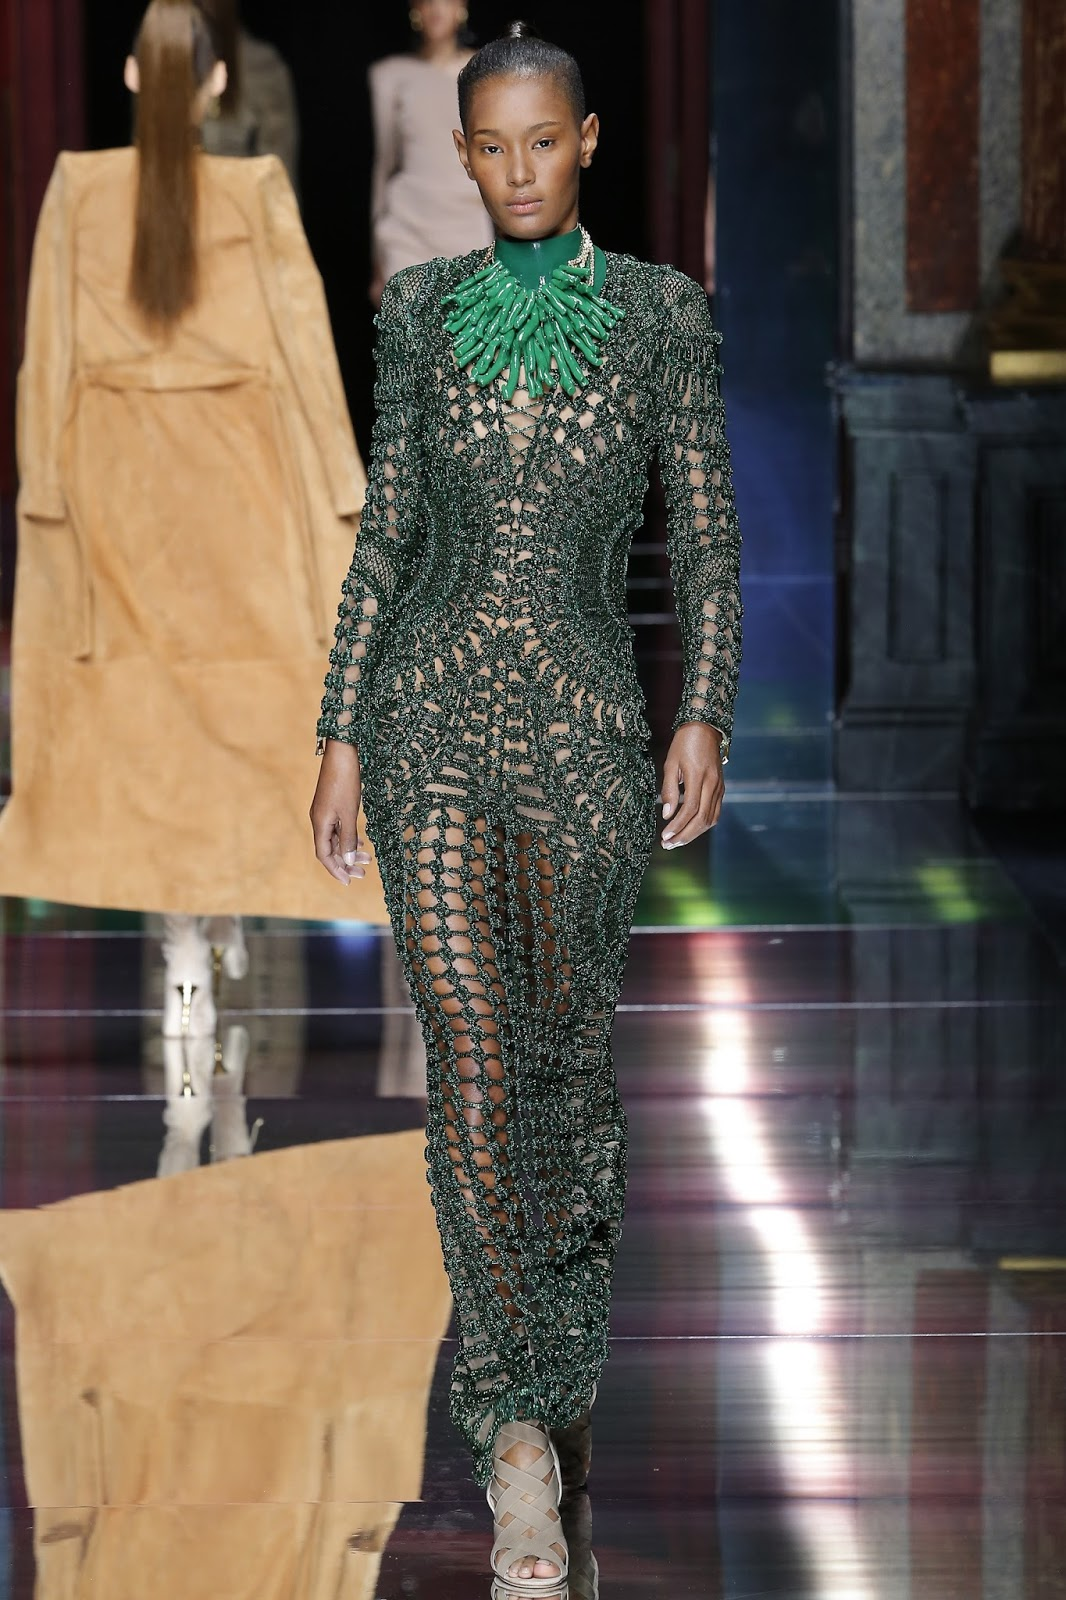 Pantone colour report & spring summer 2016 fashion trends / green flash at Balmain Spring/Summer 2016 via www.fashionedbylove.co.uk British fashion & style blog